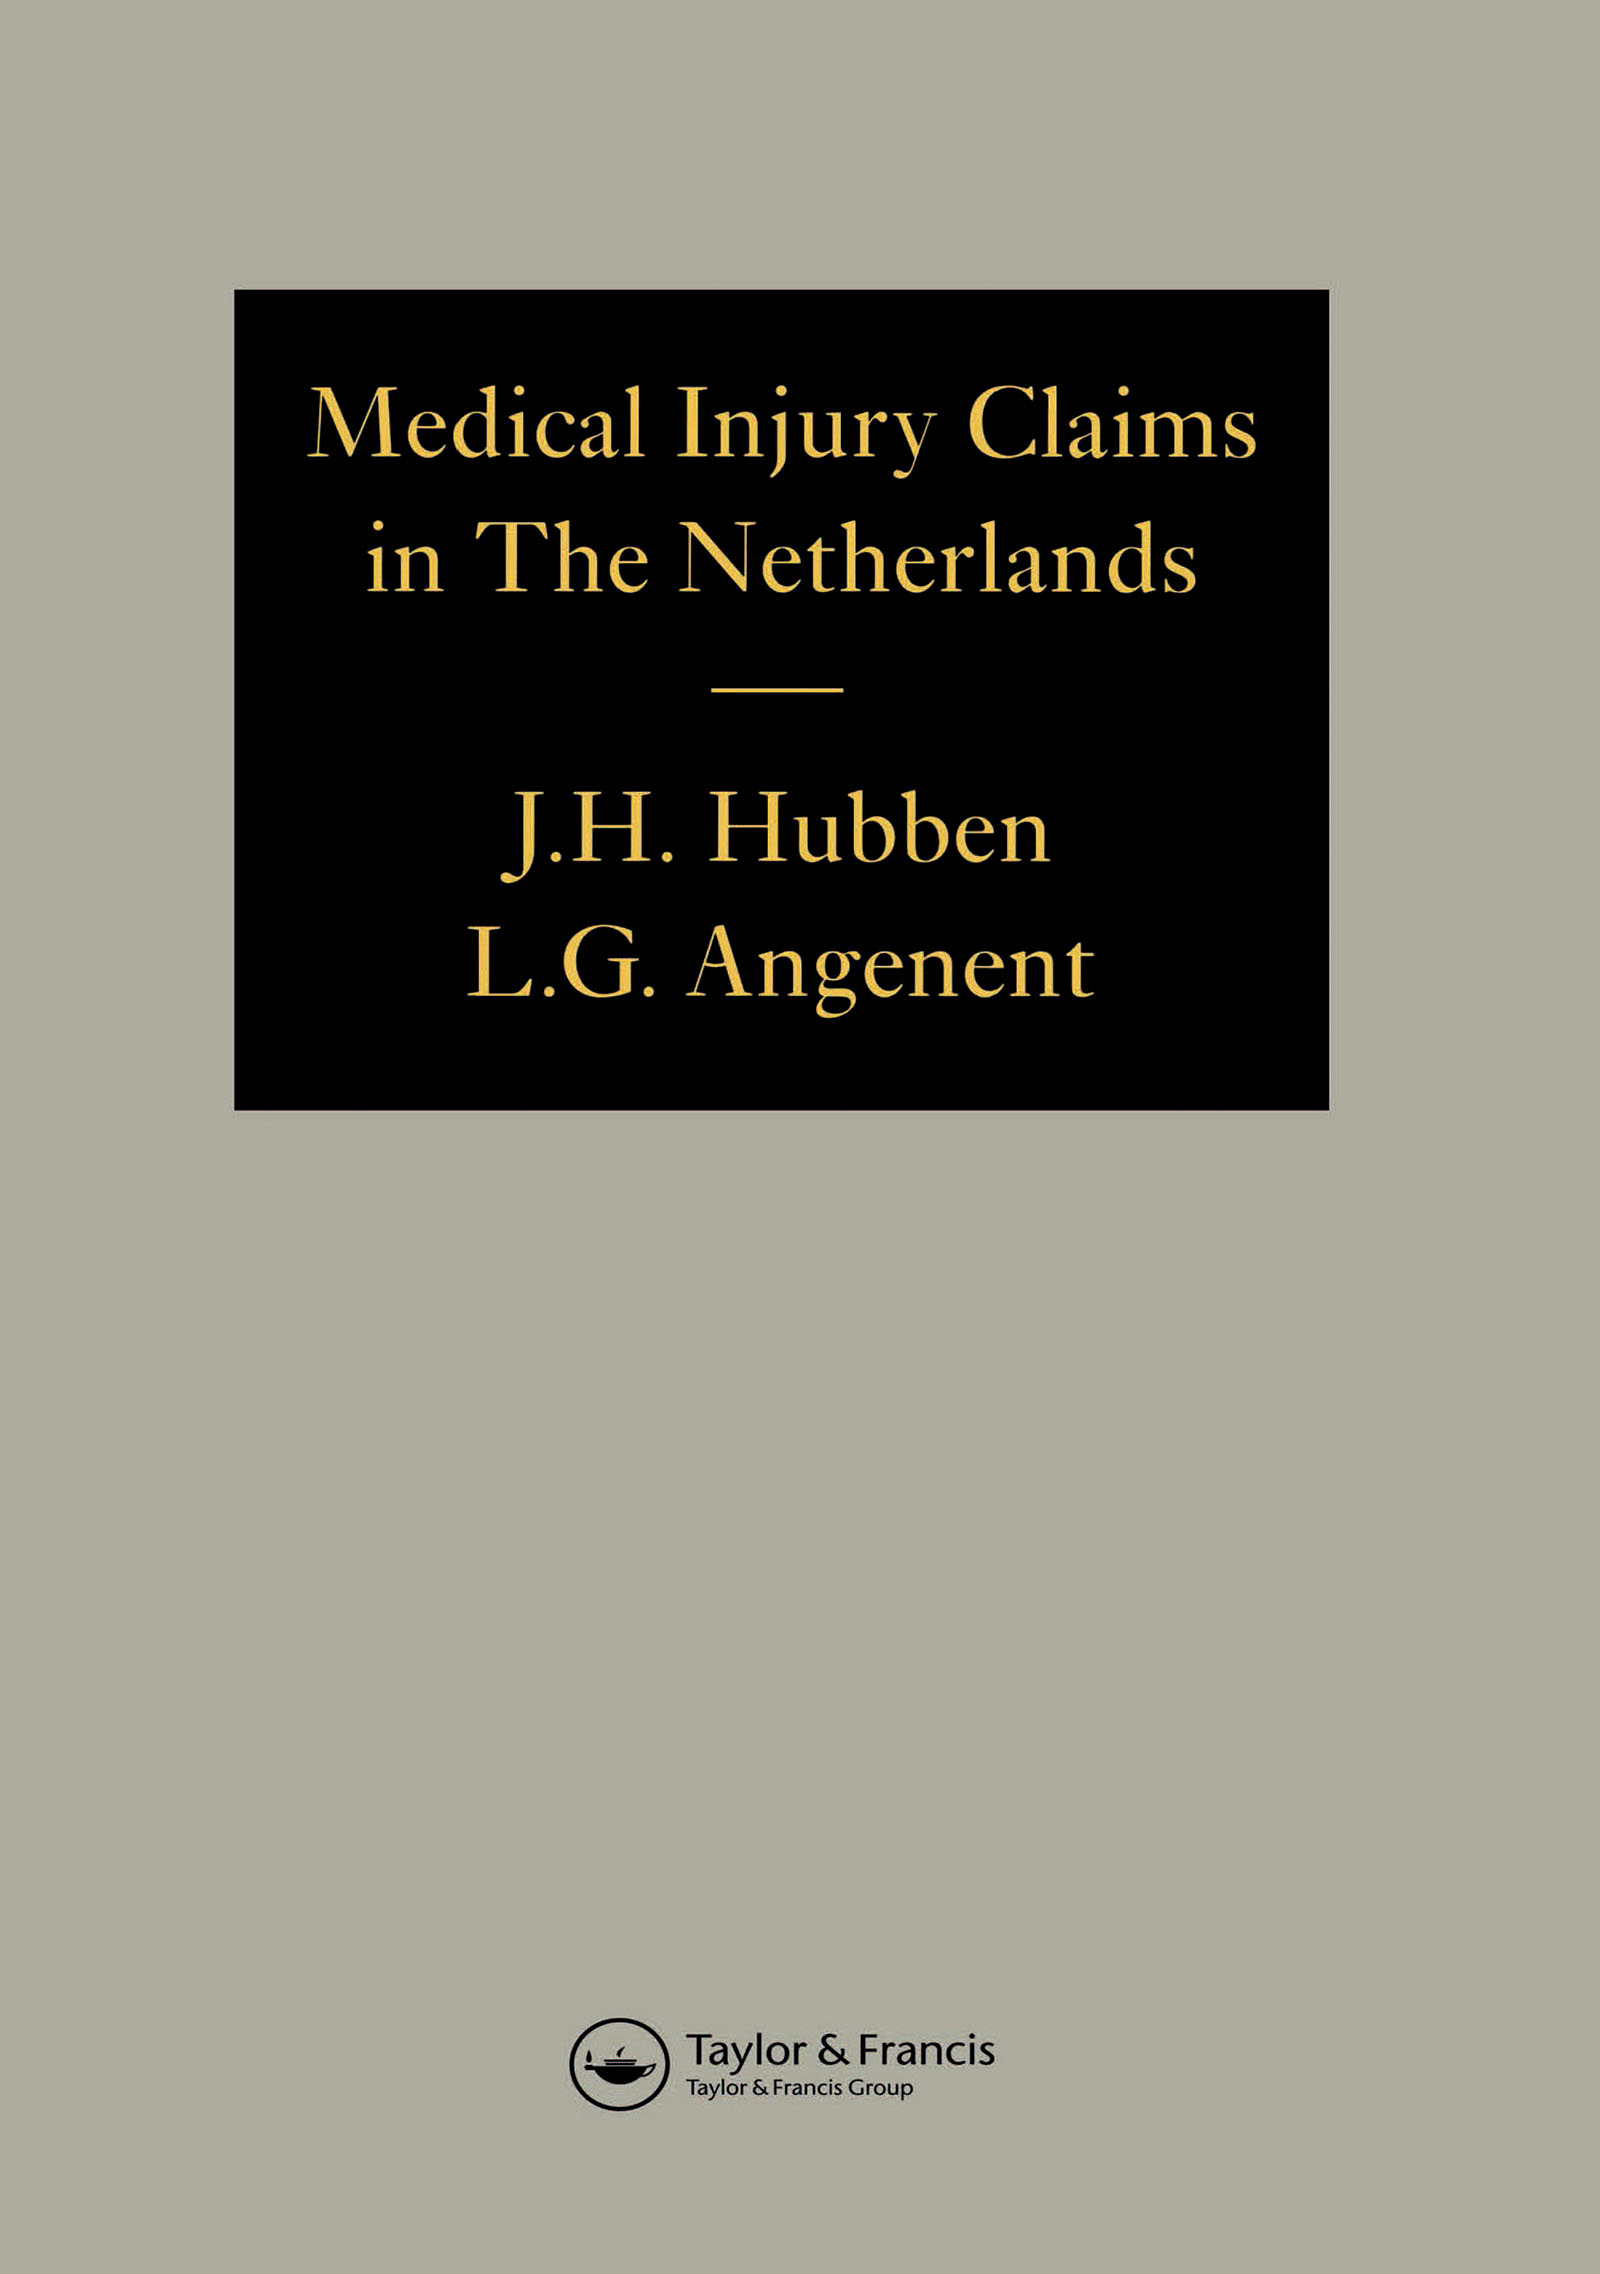 Medical Injury Claims in The Netherlands